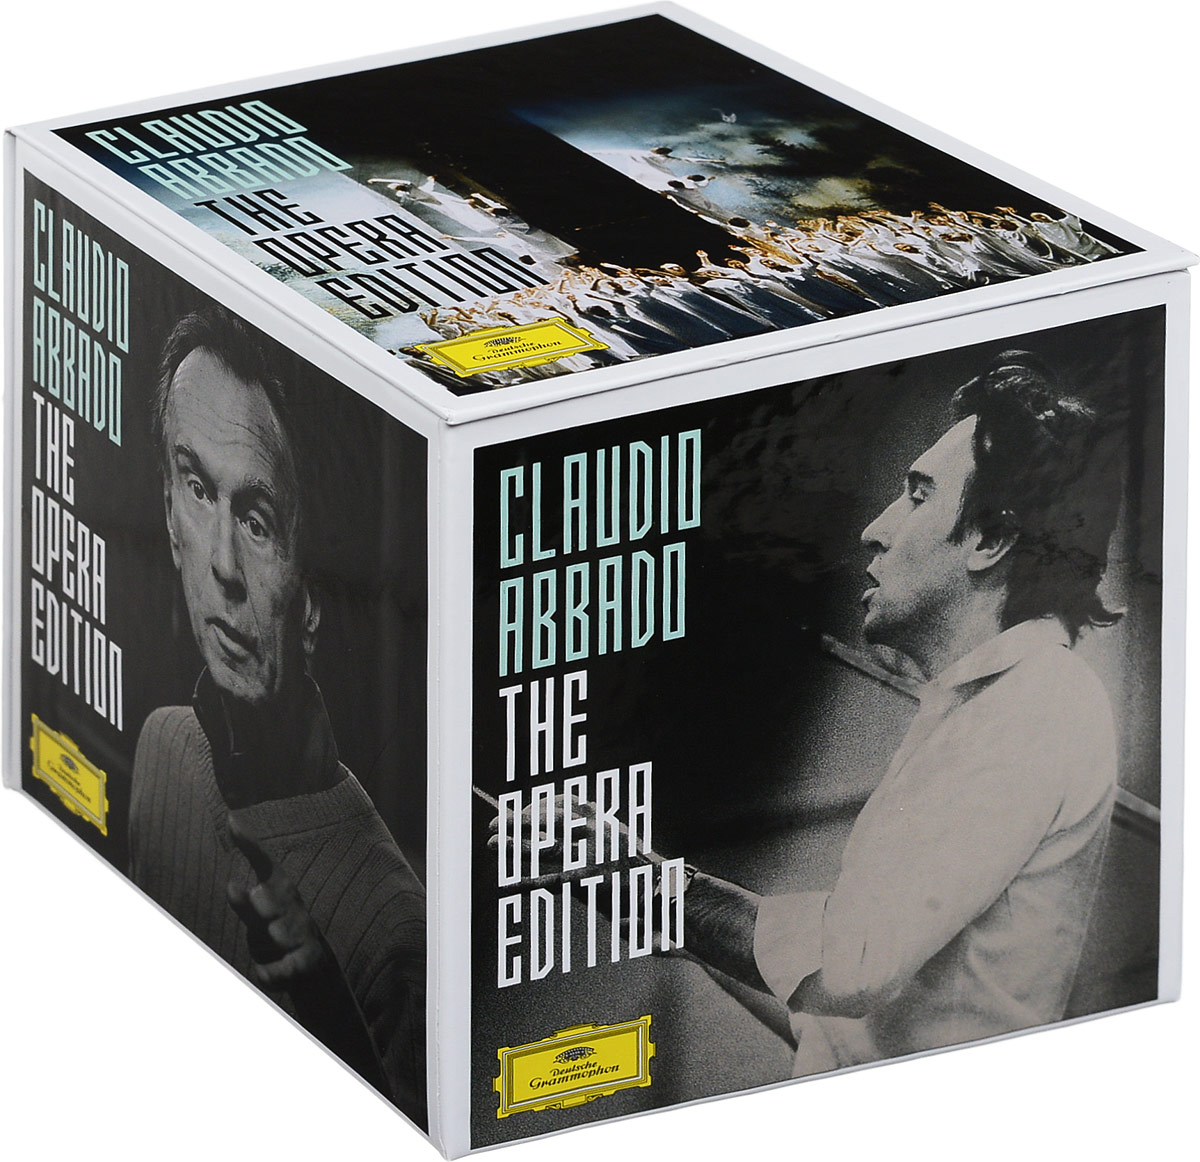 Фото - Клаудио Аббадо Claudio Abbado. The Opera Edition (60 CD) cd led zeppelin ii deluxe edition